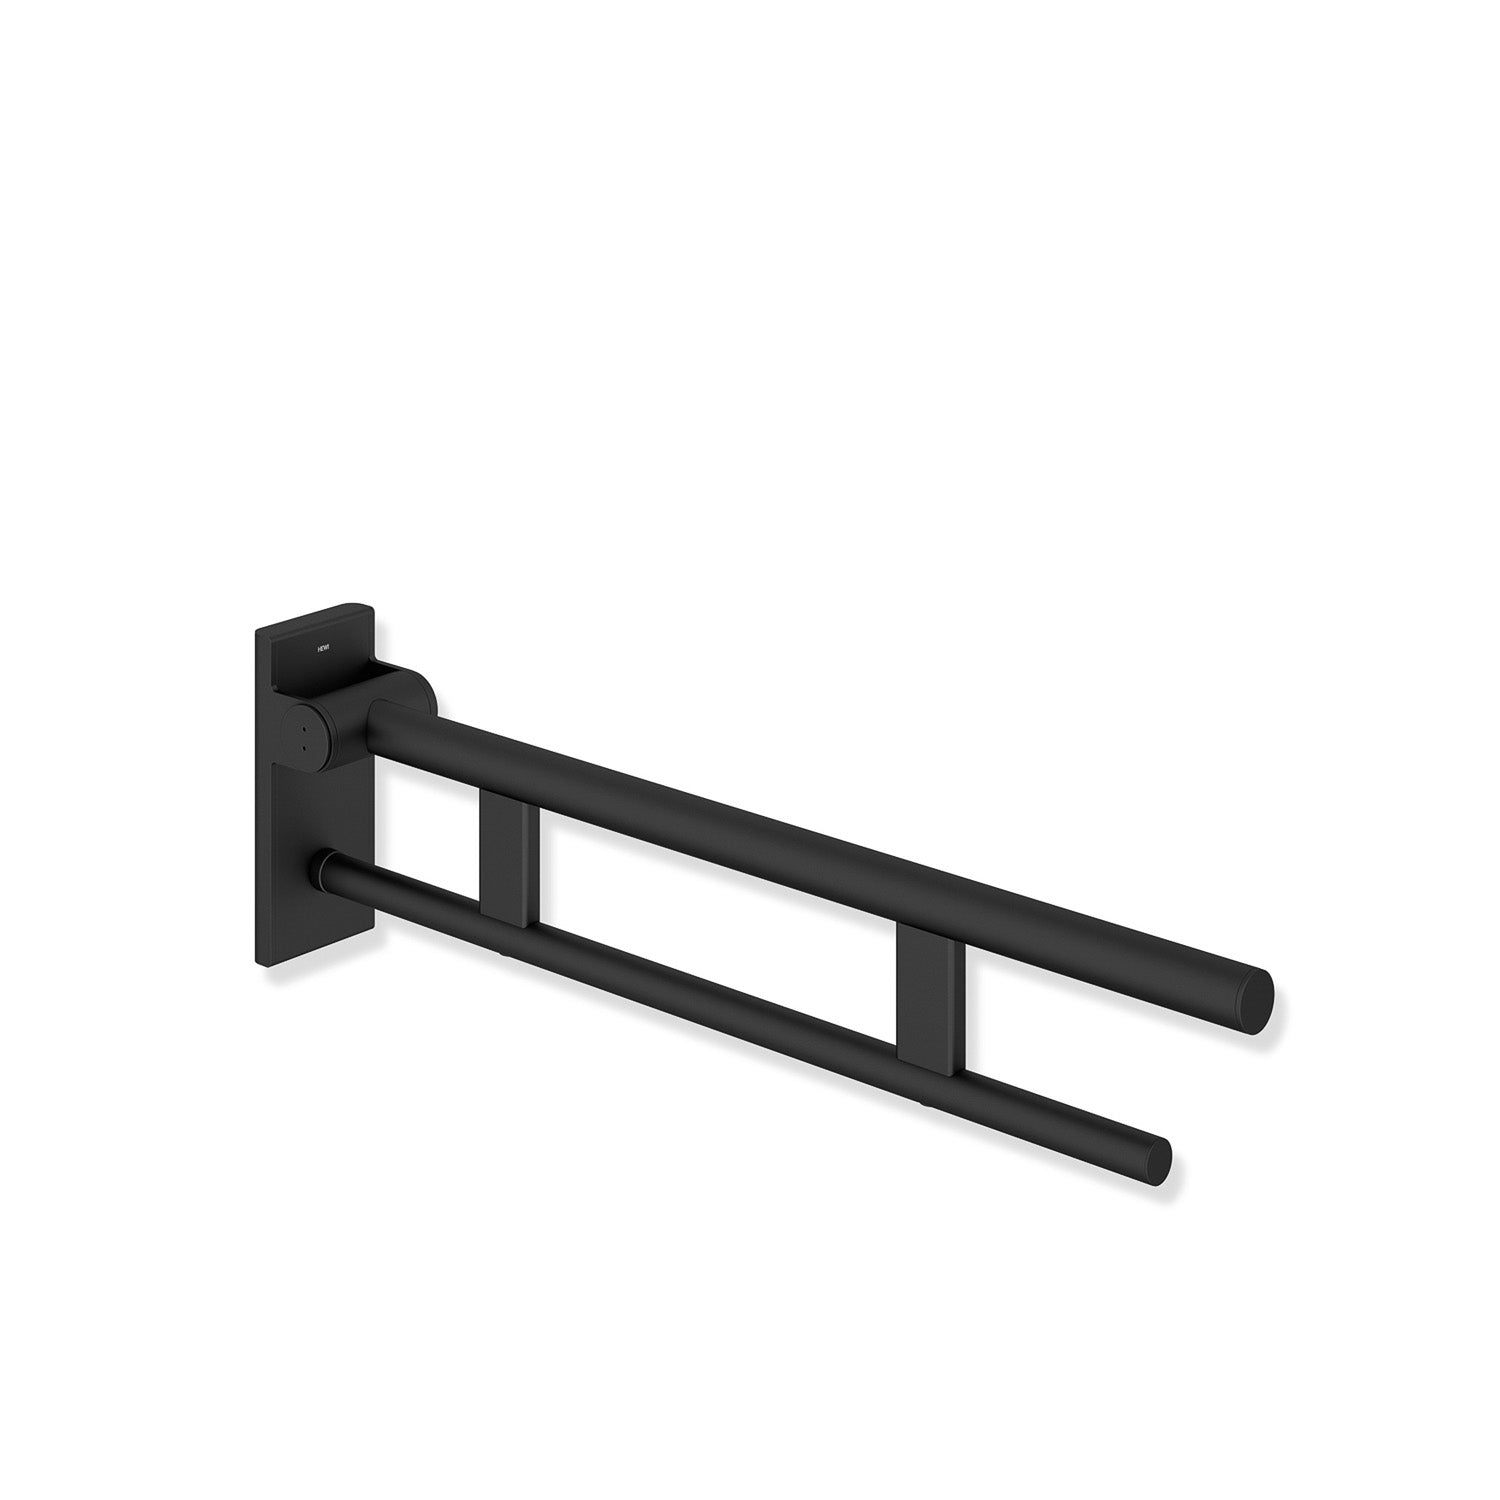 700mm Freestyle Removable Hinged Grab Rail with a matt black finish on a white background